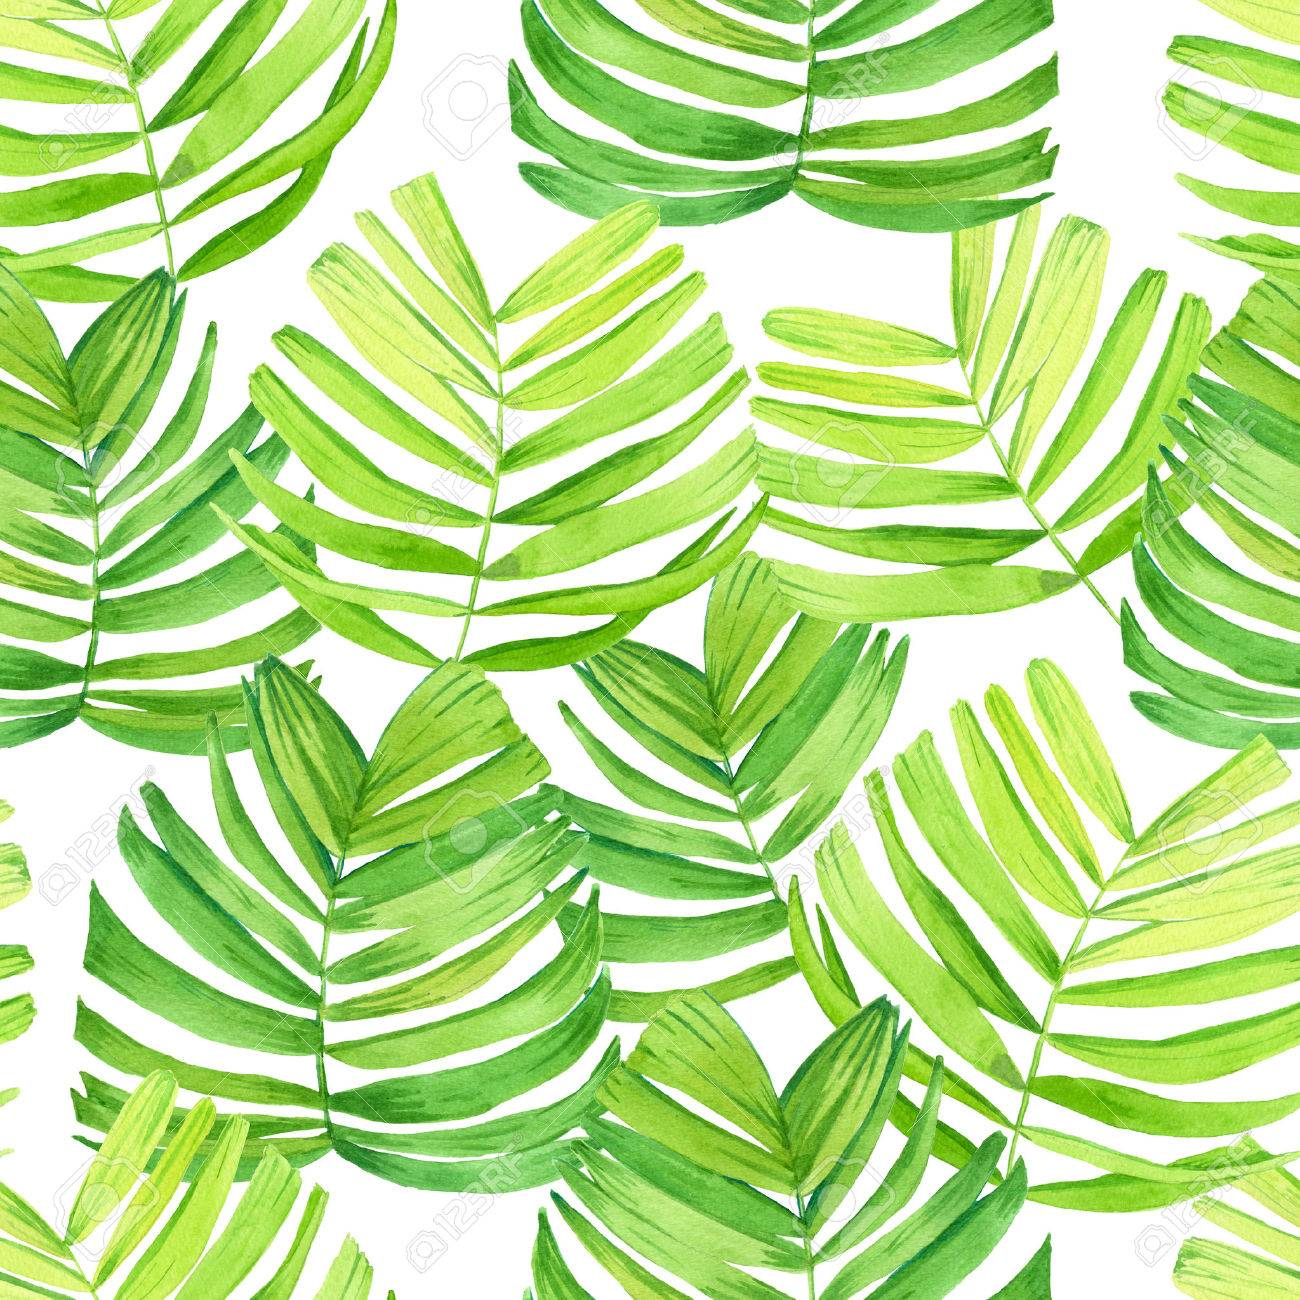 Seamless Background With Watercolor Tropical Leaves Beautiful Stock Photo Picture And Royalty Free Image Image 58751969 Works as a background where you can add images or text. seamless background with watercolor tropical leaves beautiful